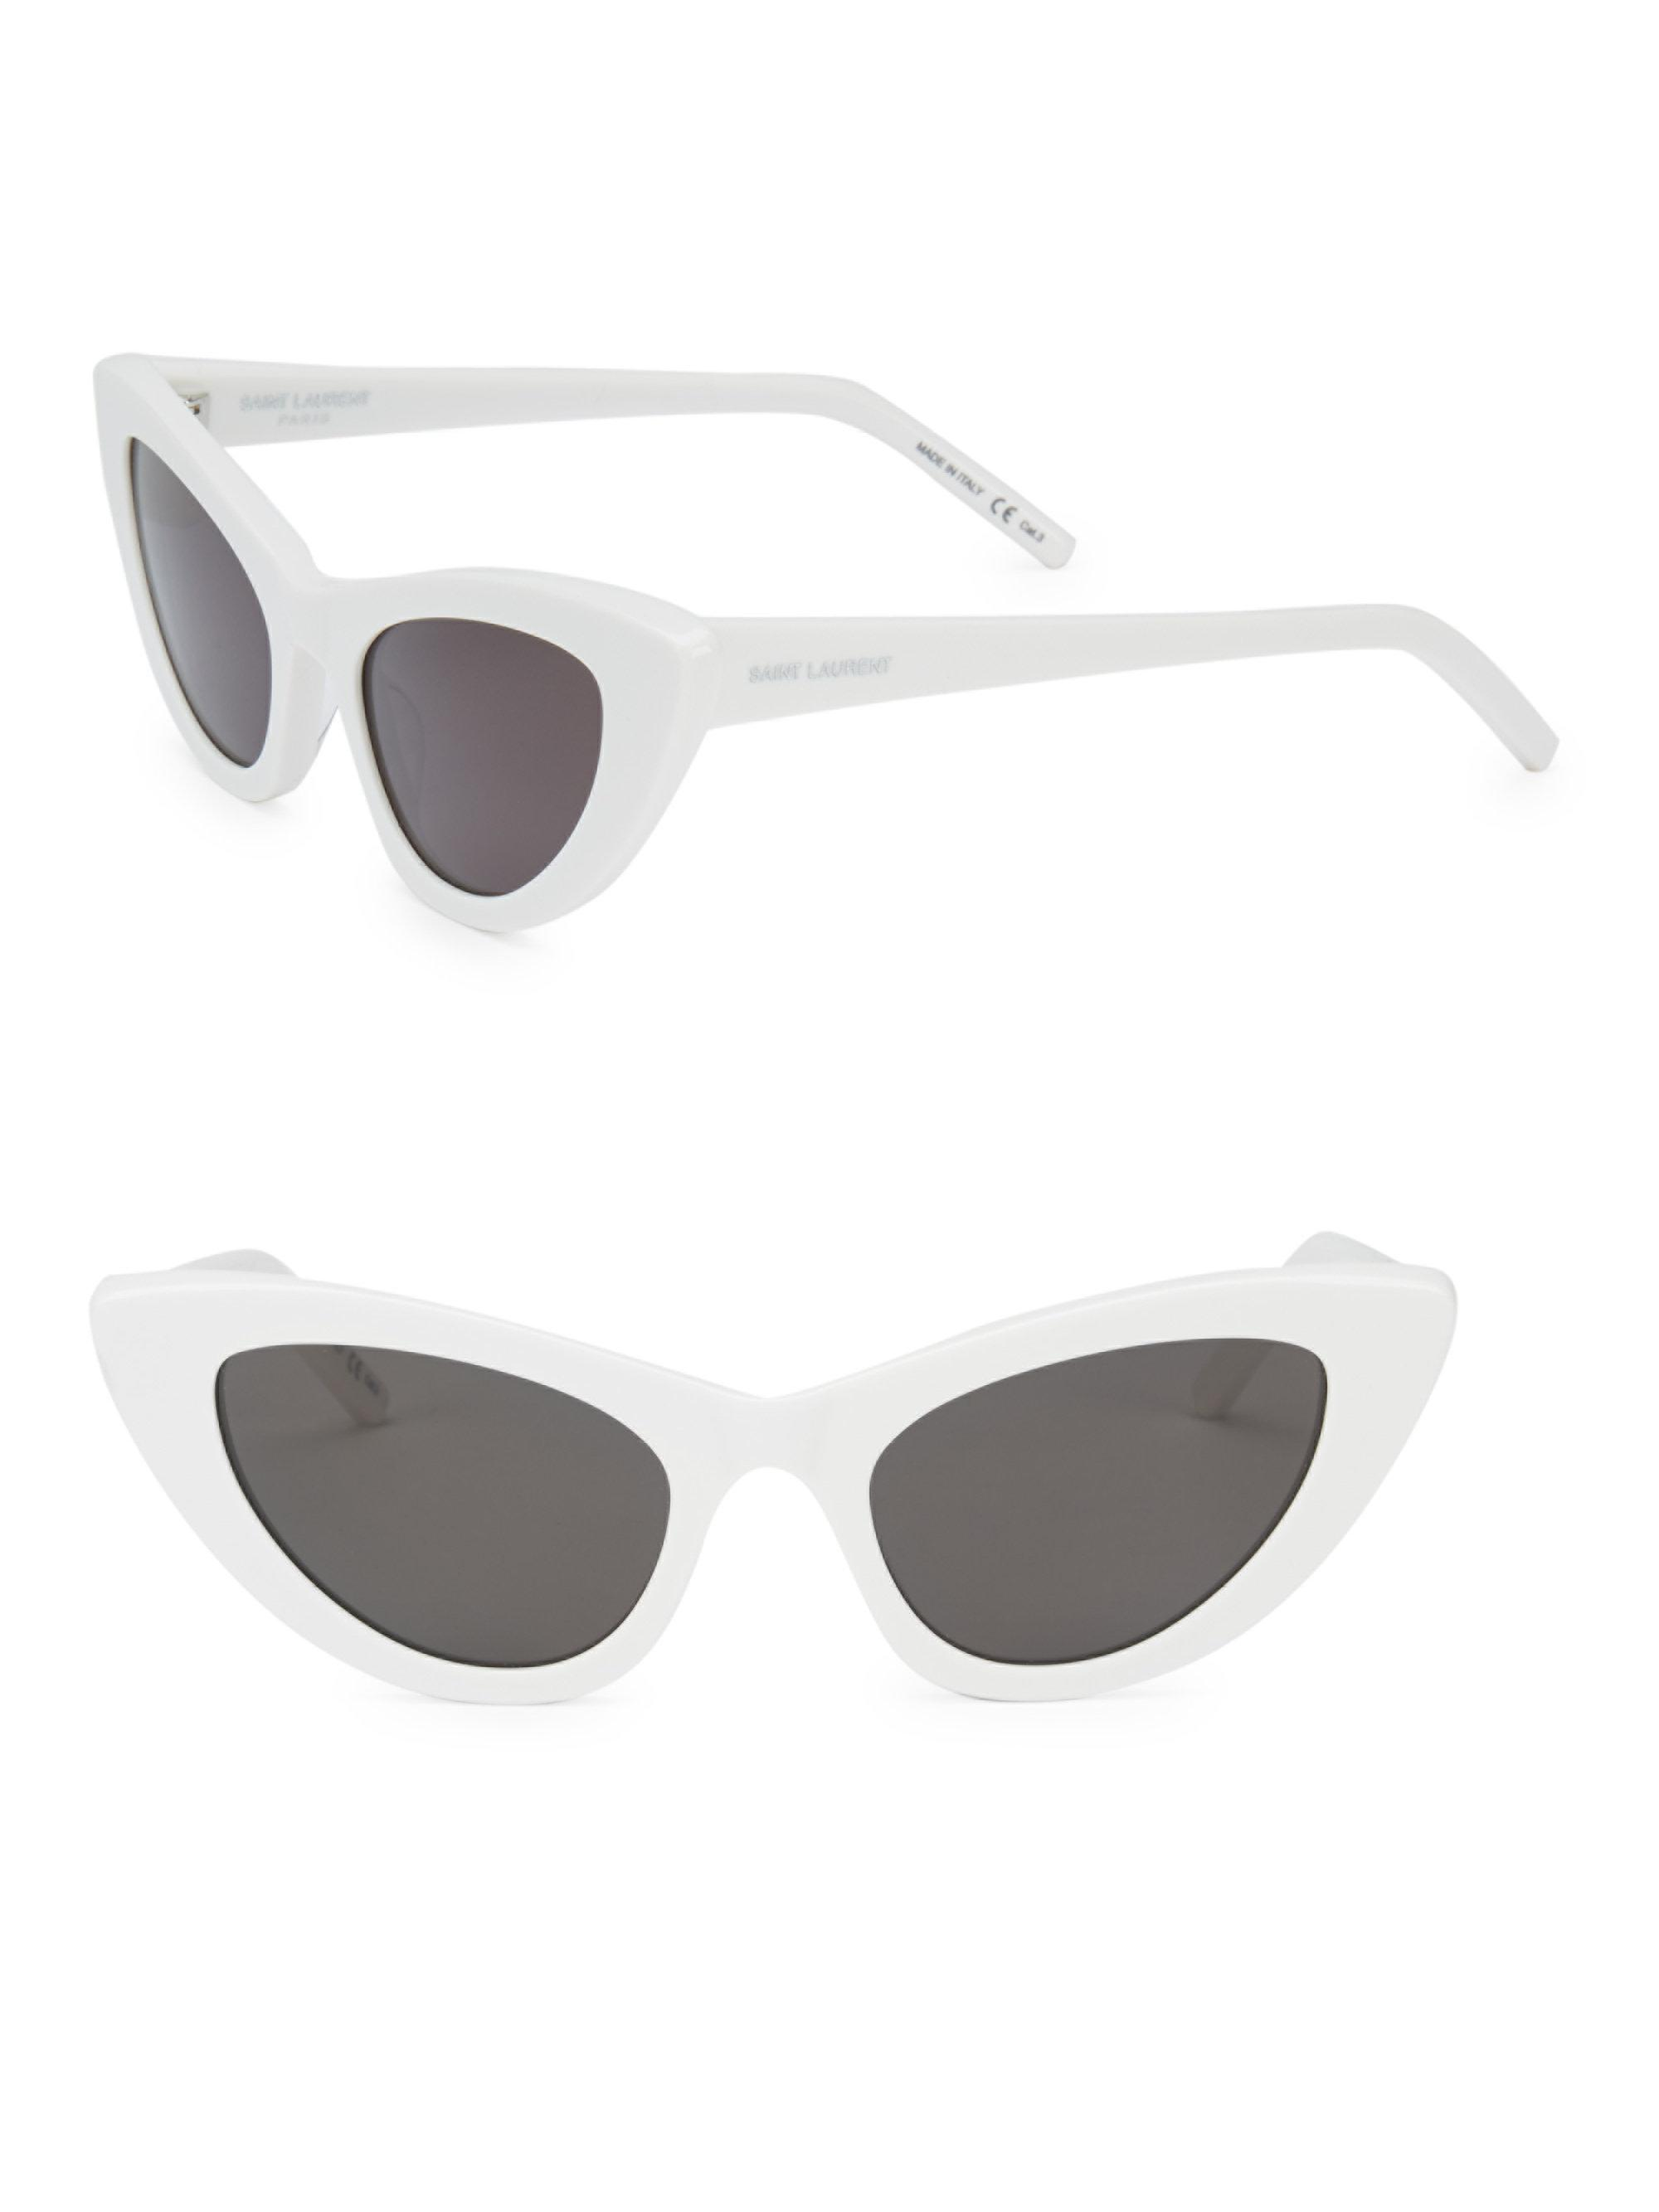 233ed0430f Saint Laurent New Wave 213 Lily Sunglasses 52mm in White - Lyst